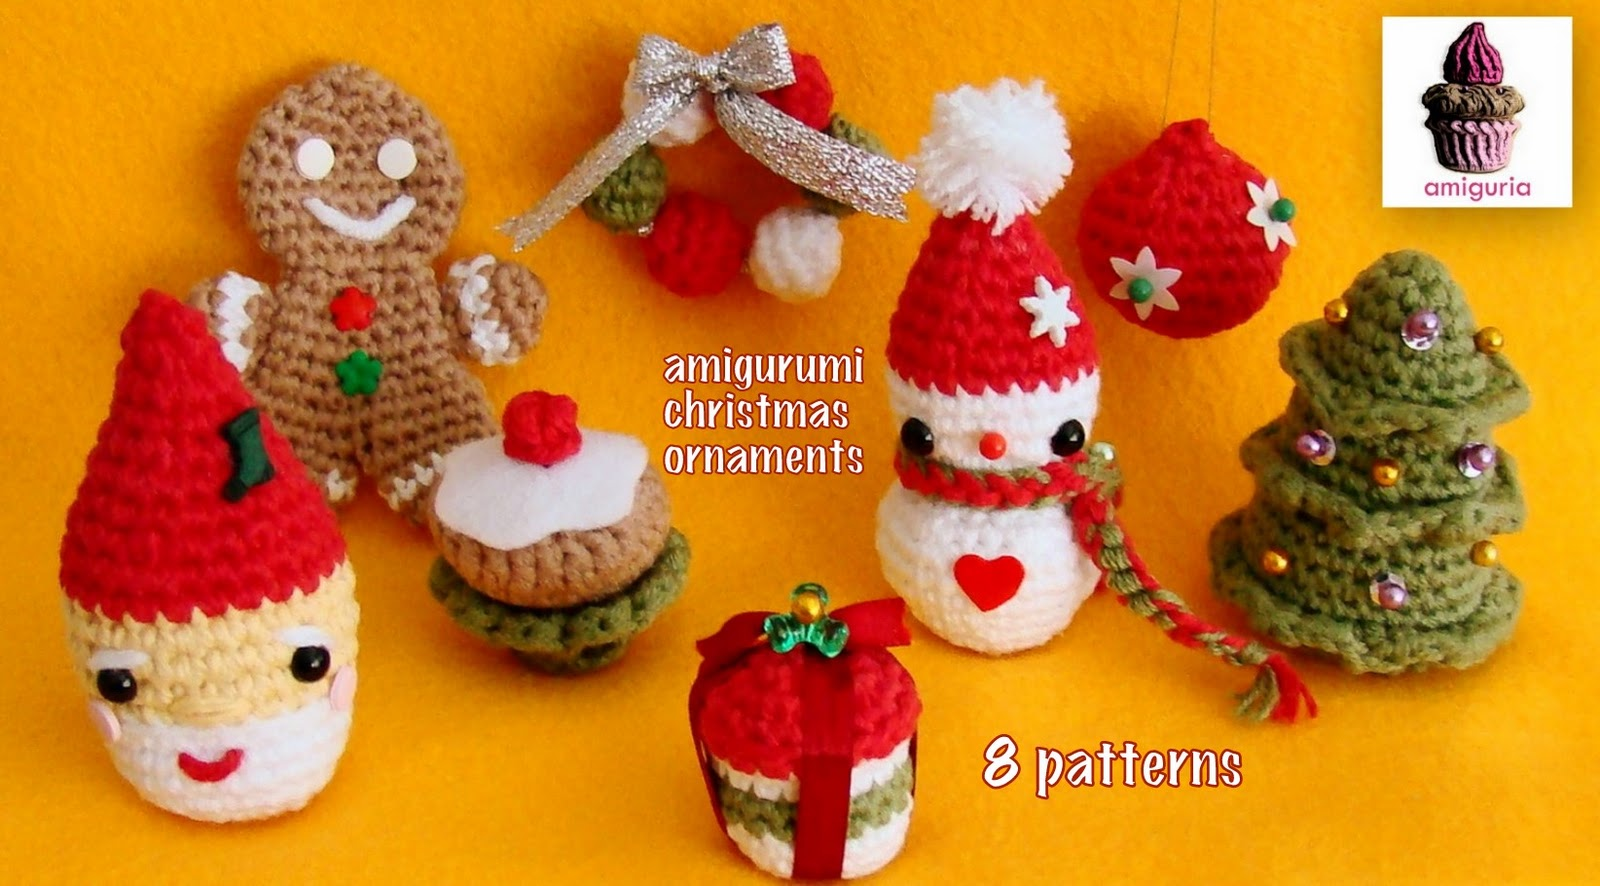 Free Crochet Patterns for Christmas Stockings - Yahoo! Voices